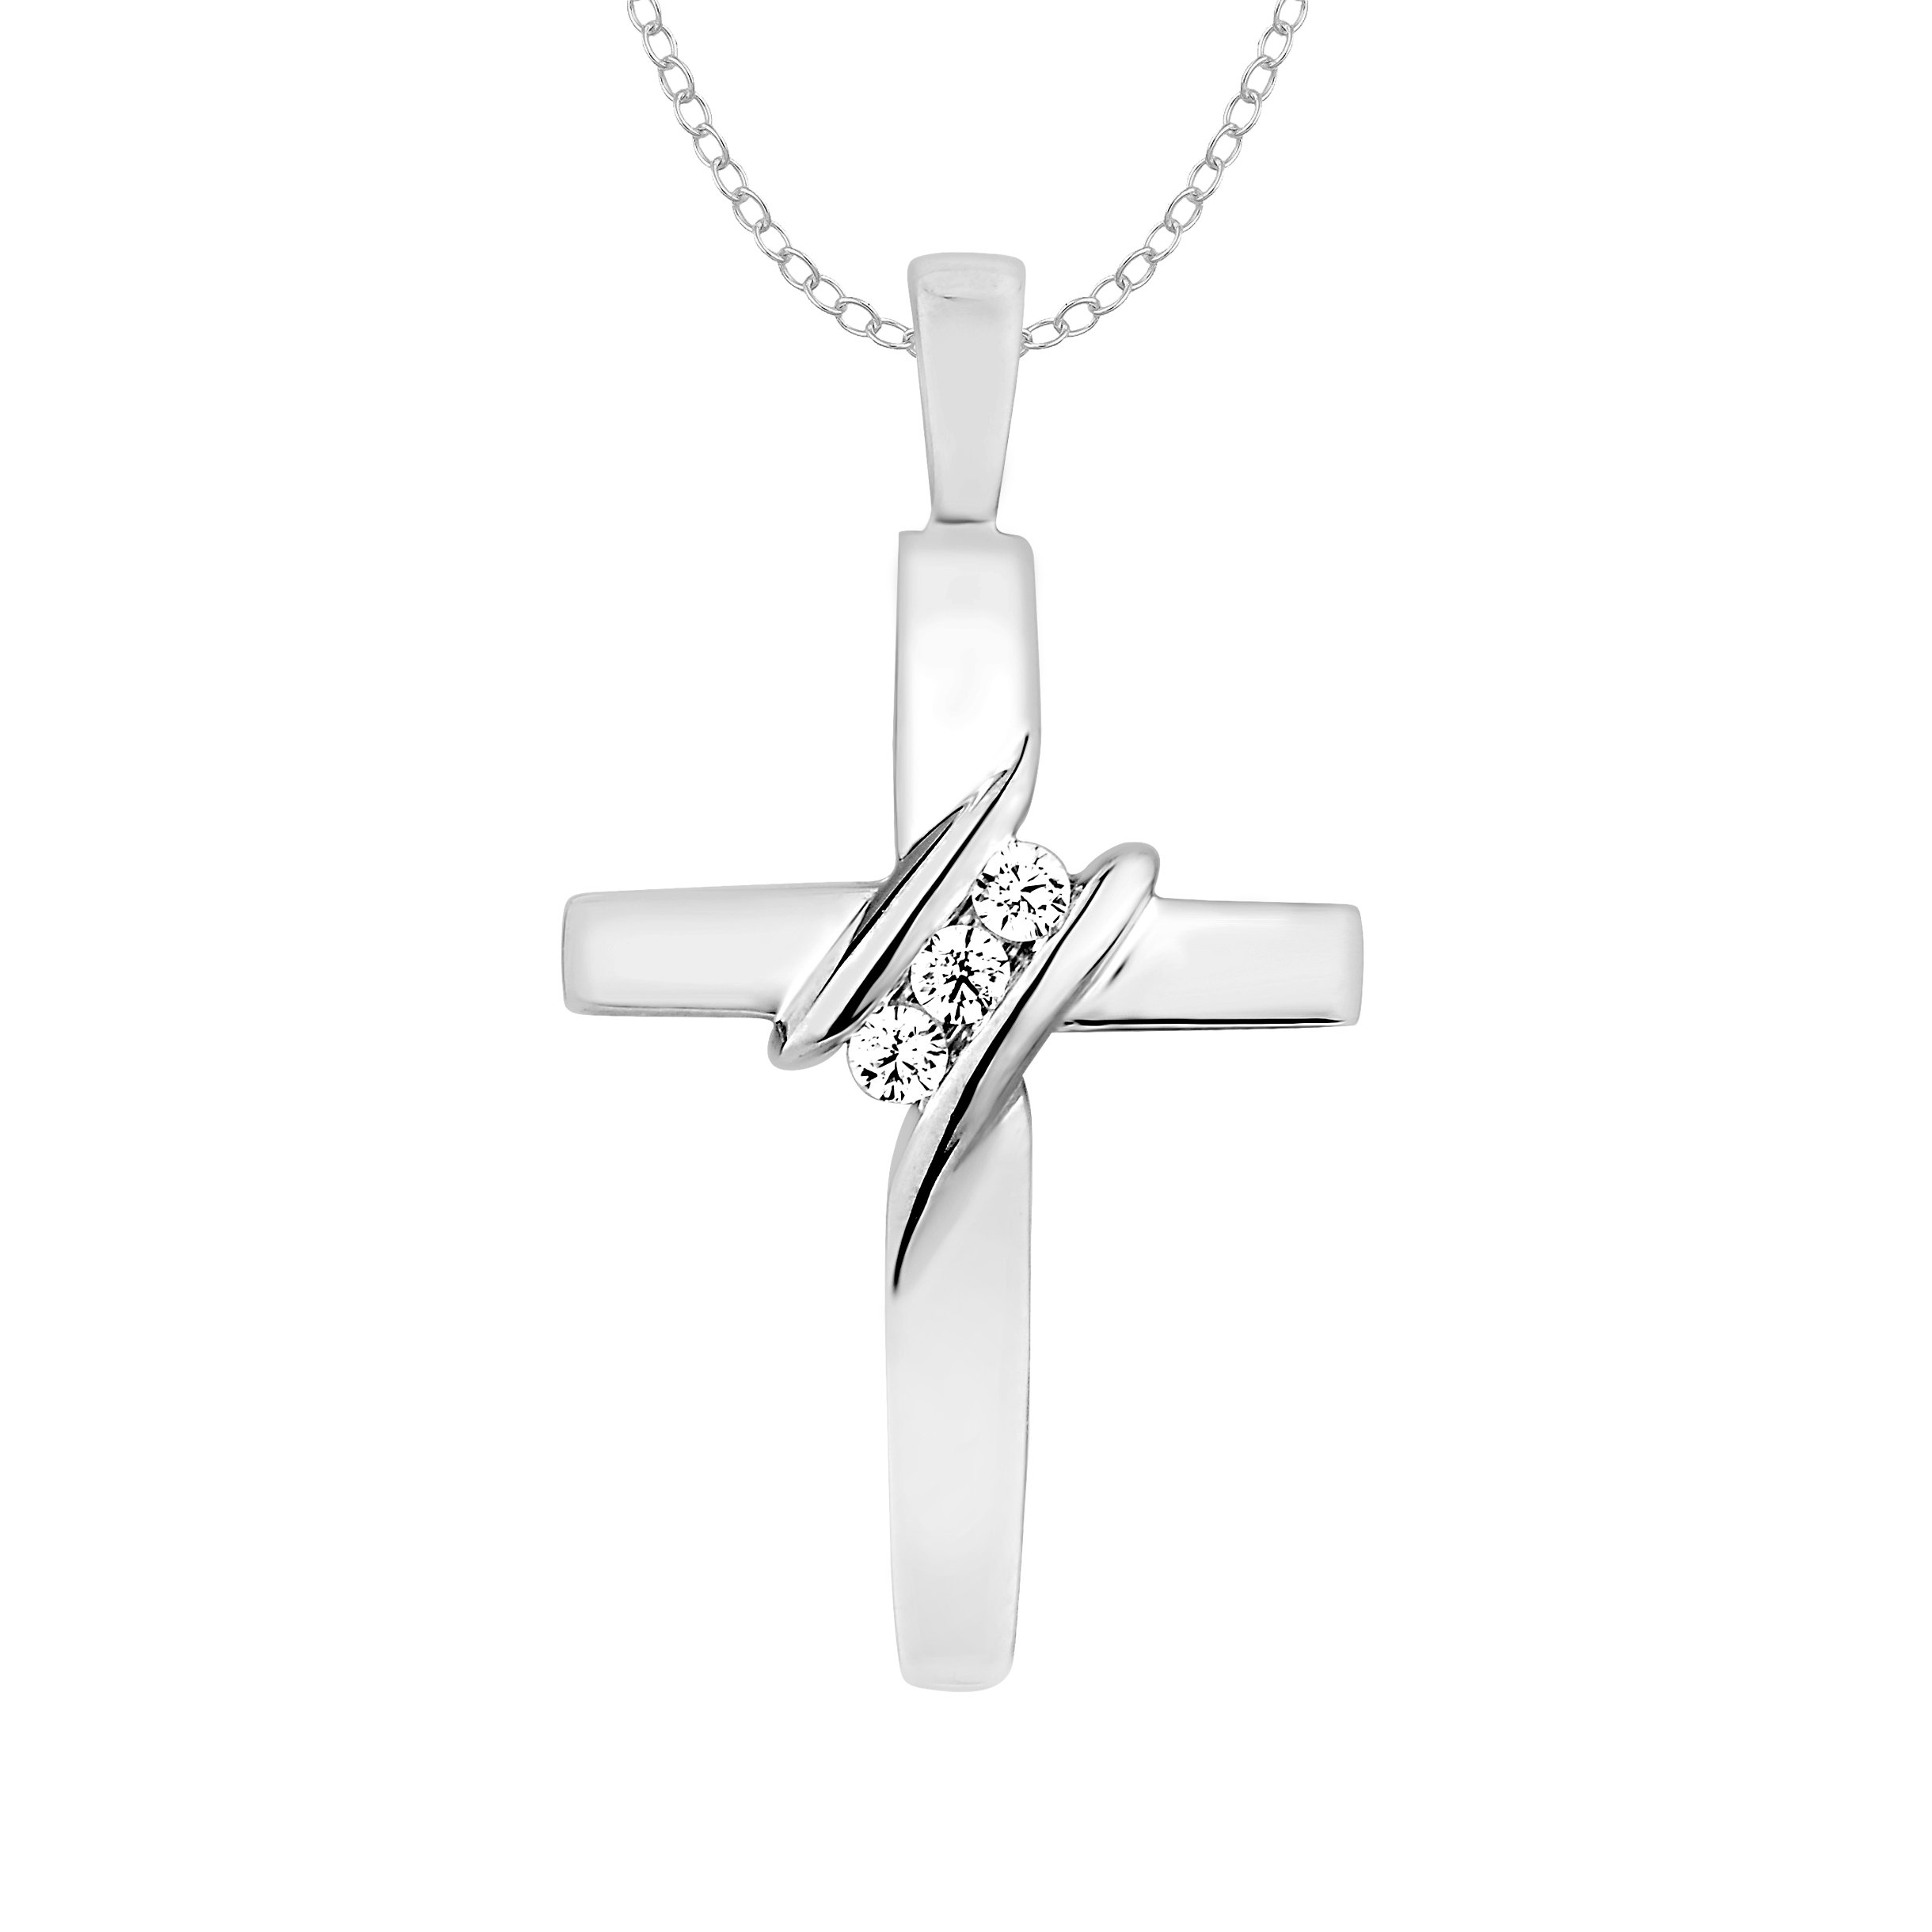 10k Diamond Three-Stone Cross Pendant Necklace Religious Jewelry (0.05cttw, I-J / I2-I3)18'' by EternalDia